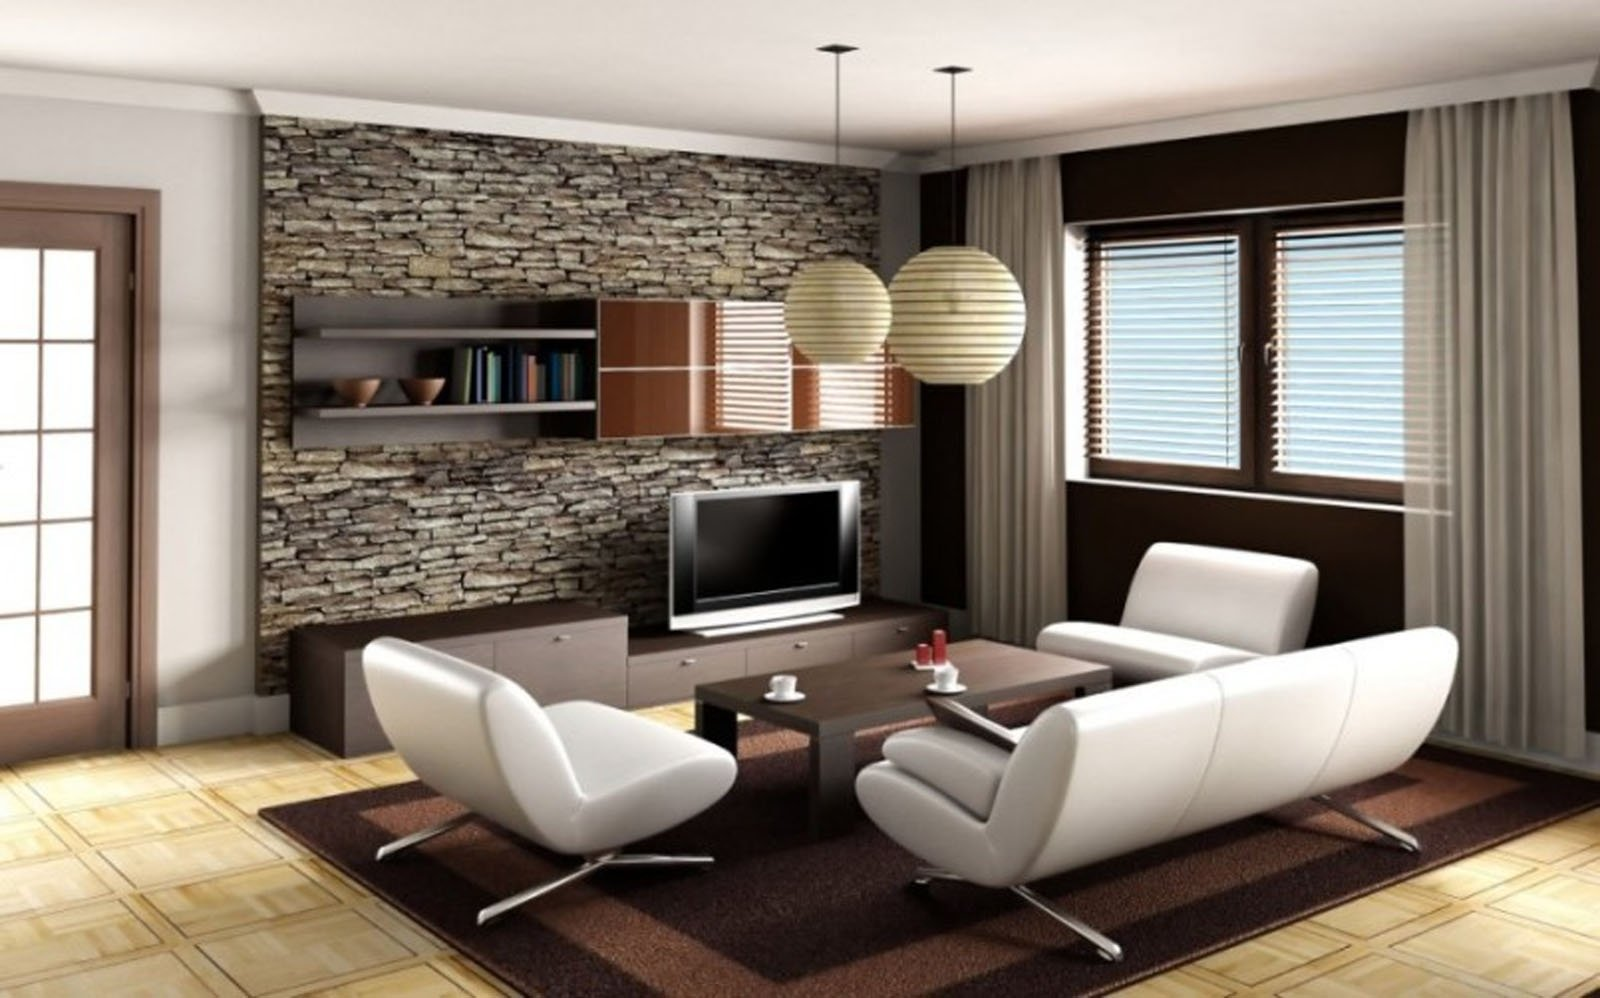 10 Unique Small Space Living Room Ideas lounge ideas for small spaces contemporary living room ideas small 2